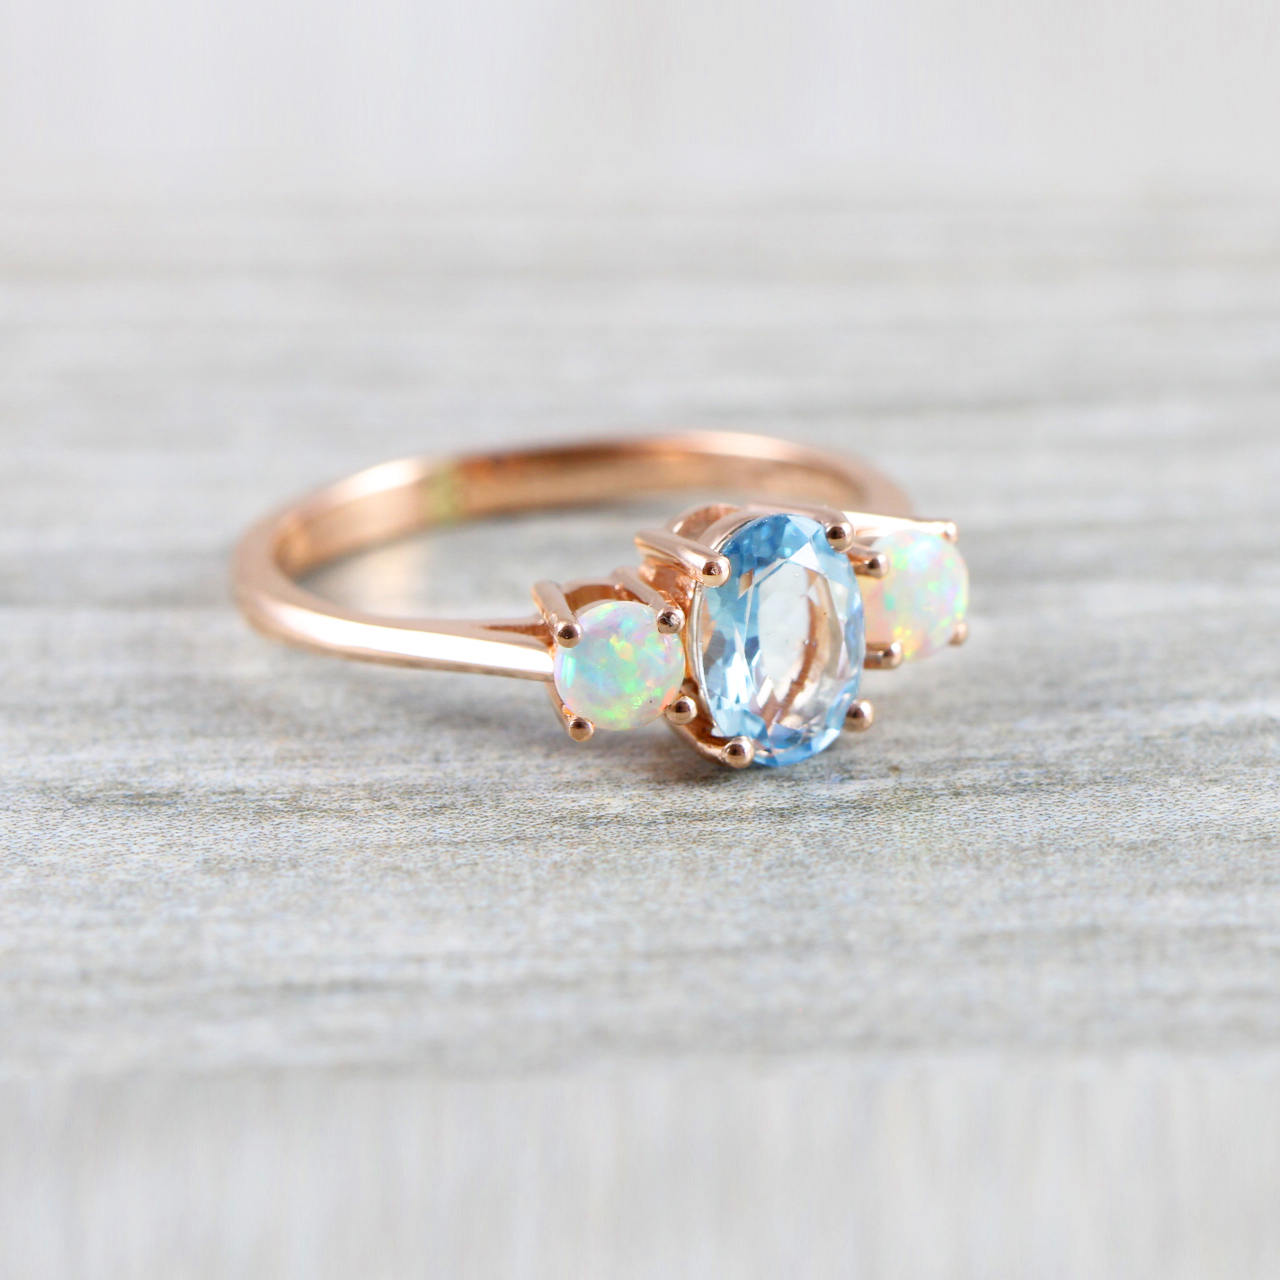 560bb73181024 Opal and aquamarine engagement ring handmade trilogy three stone in  rose/white/yellow gold or platinum unique